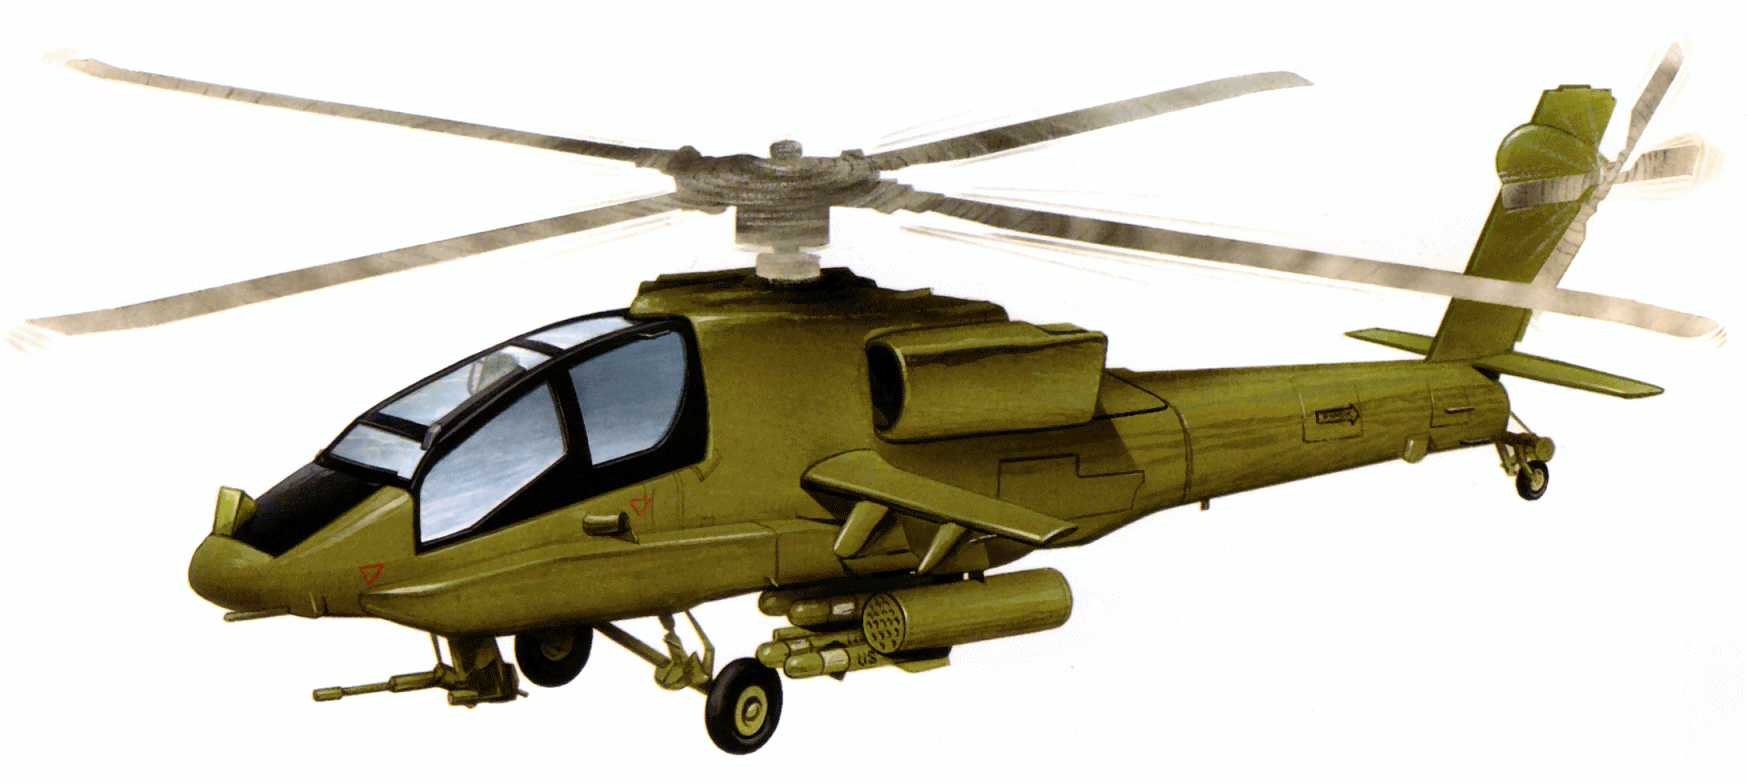 helicopter photos with Helicopters Clipart on 6132455603 in addition 346917977519421654 together with A035 02 moreover Helicopter Anti Submarine Squadron 8 besides Helicopters Clipart.